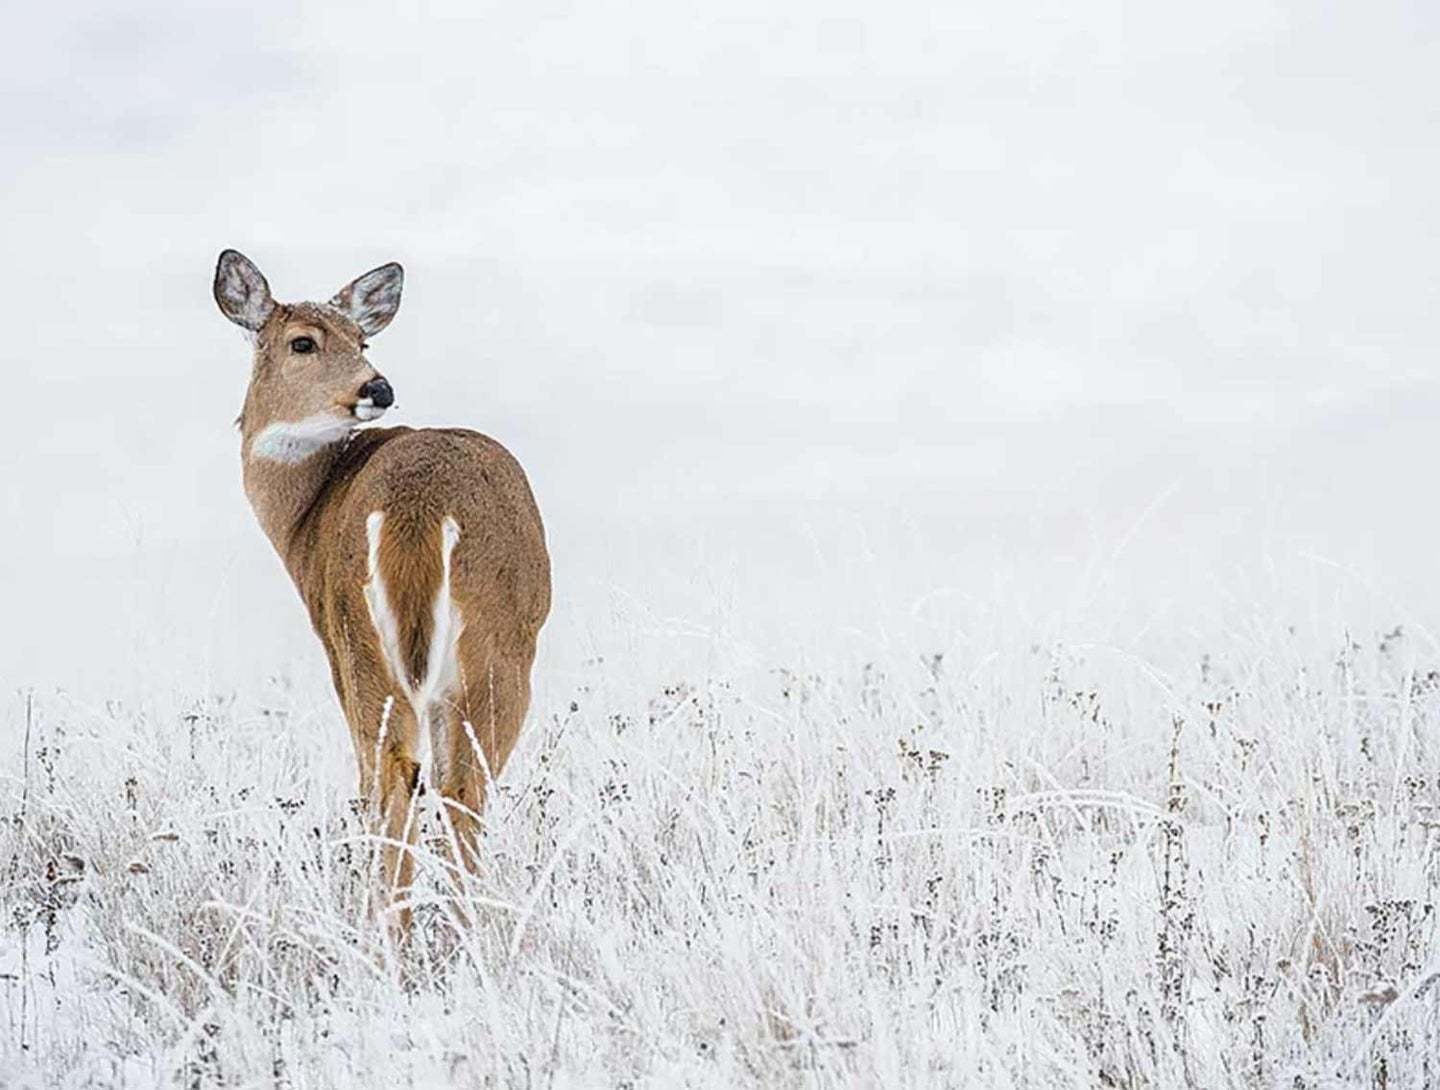 A whitetail doe walks through a snow-covered field of grass.